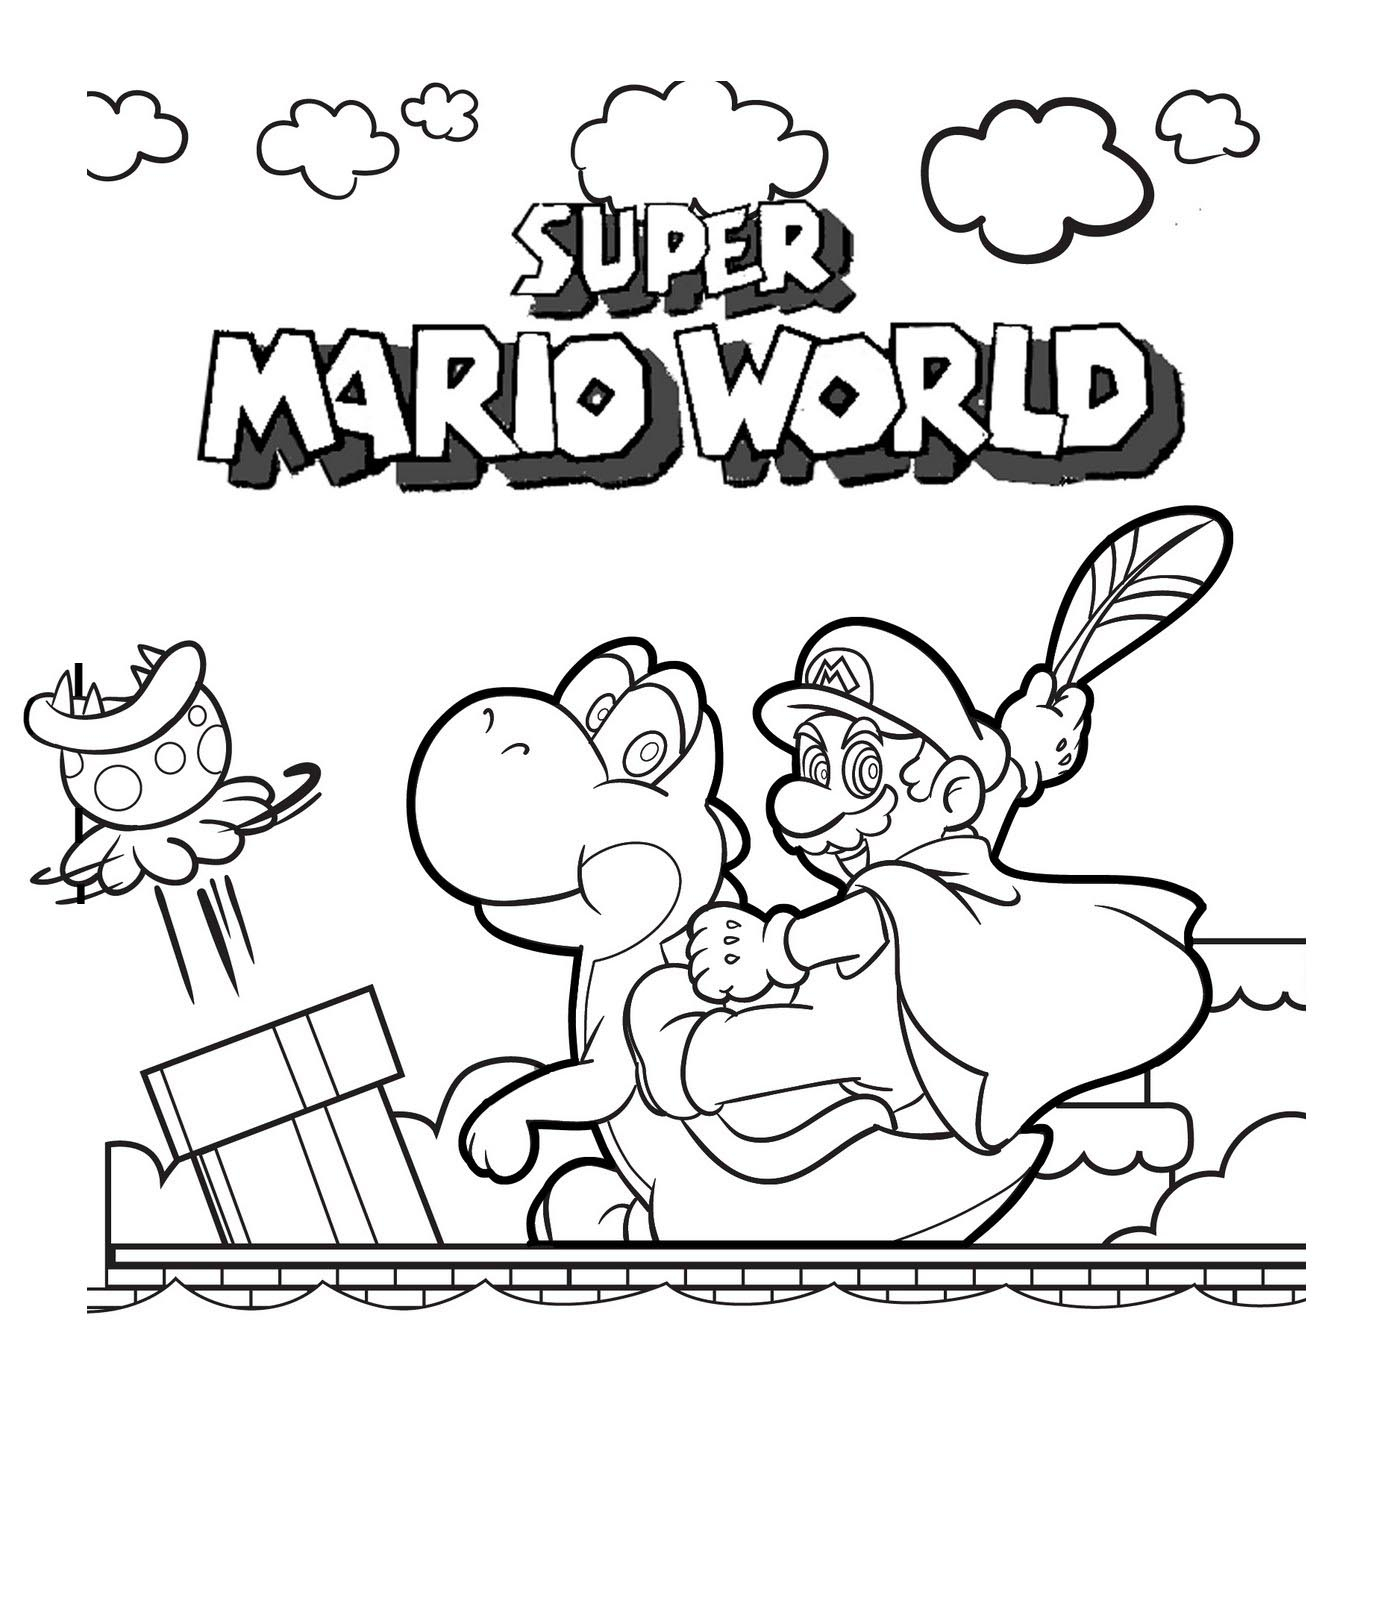 Awesome Coloring Pages Mario Printable In Pretty Free Printable Download Of Toad Mario Drawing at Getdrawings Gallery